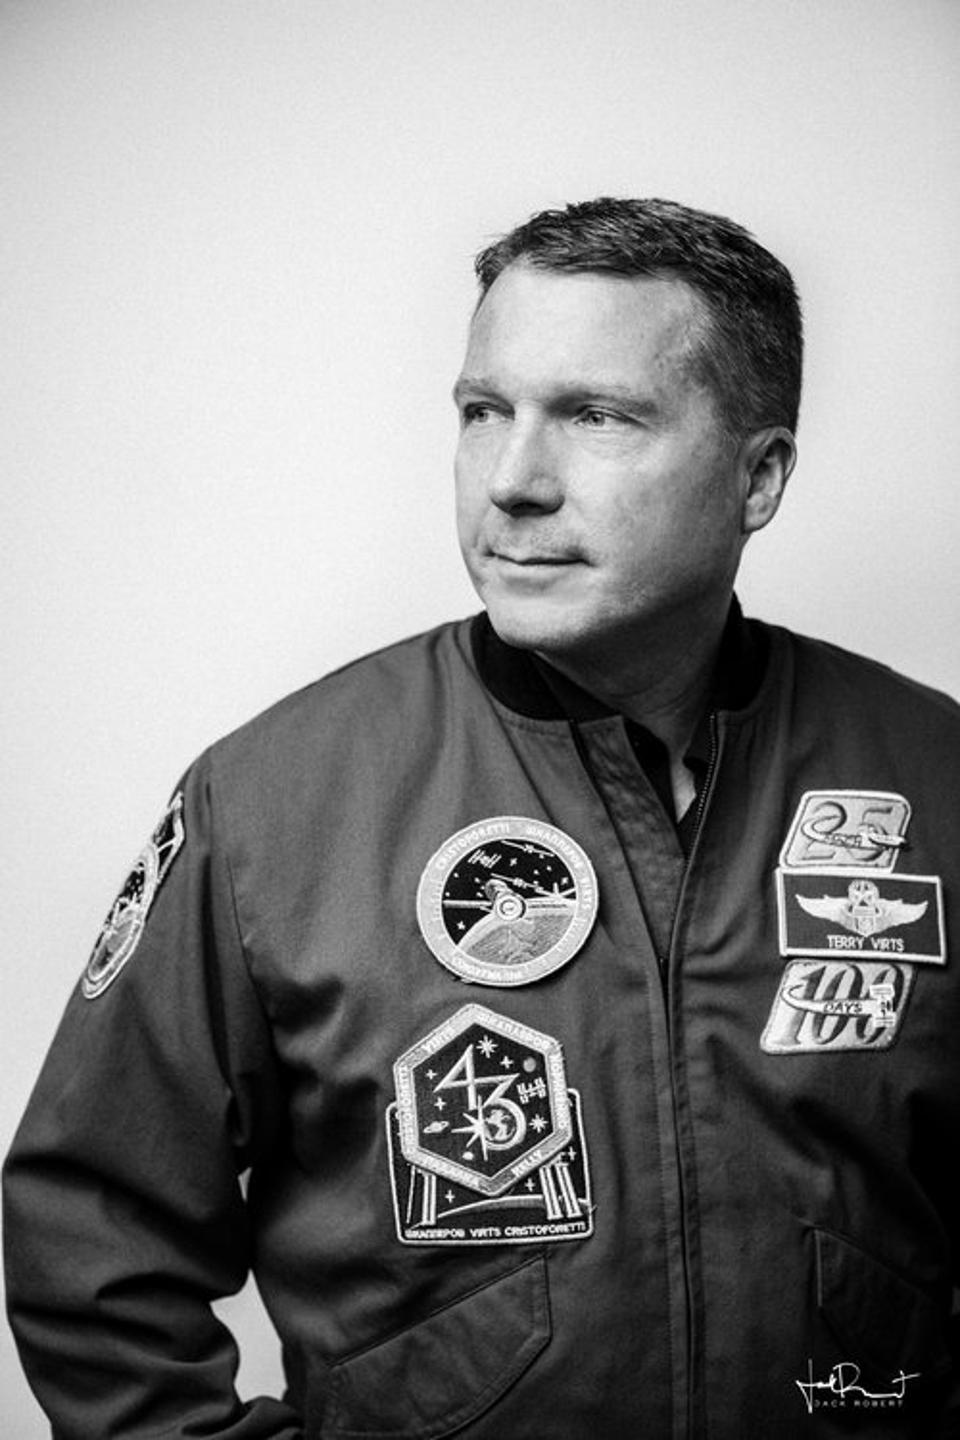 Astronaut and former Colonel Terry Virts in his NASA jumpsuit